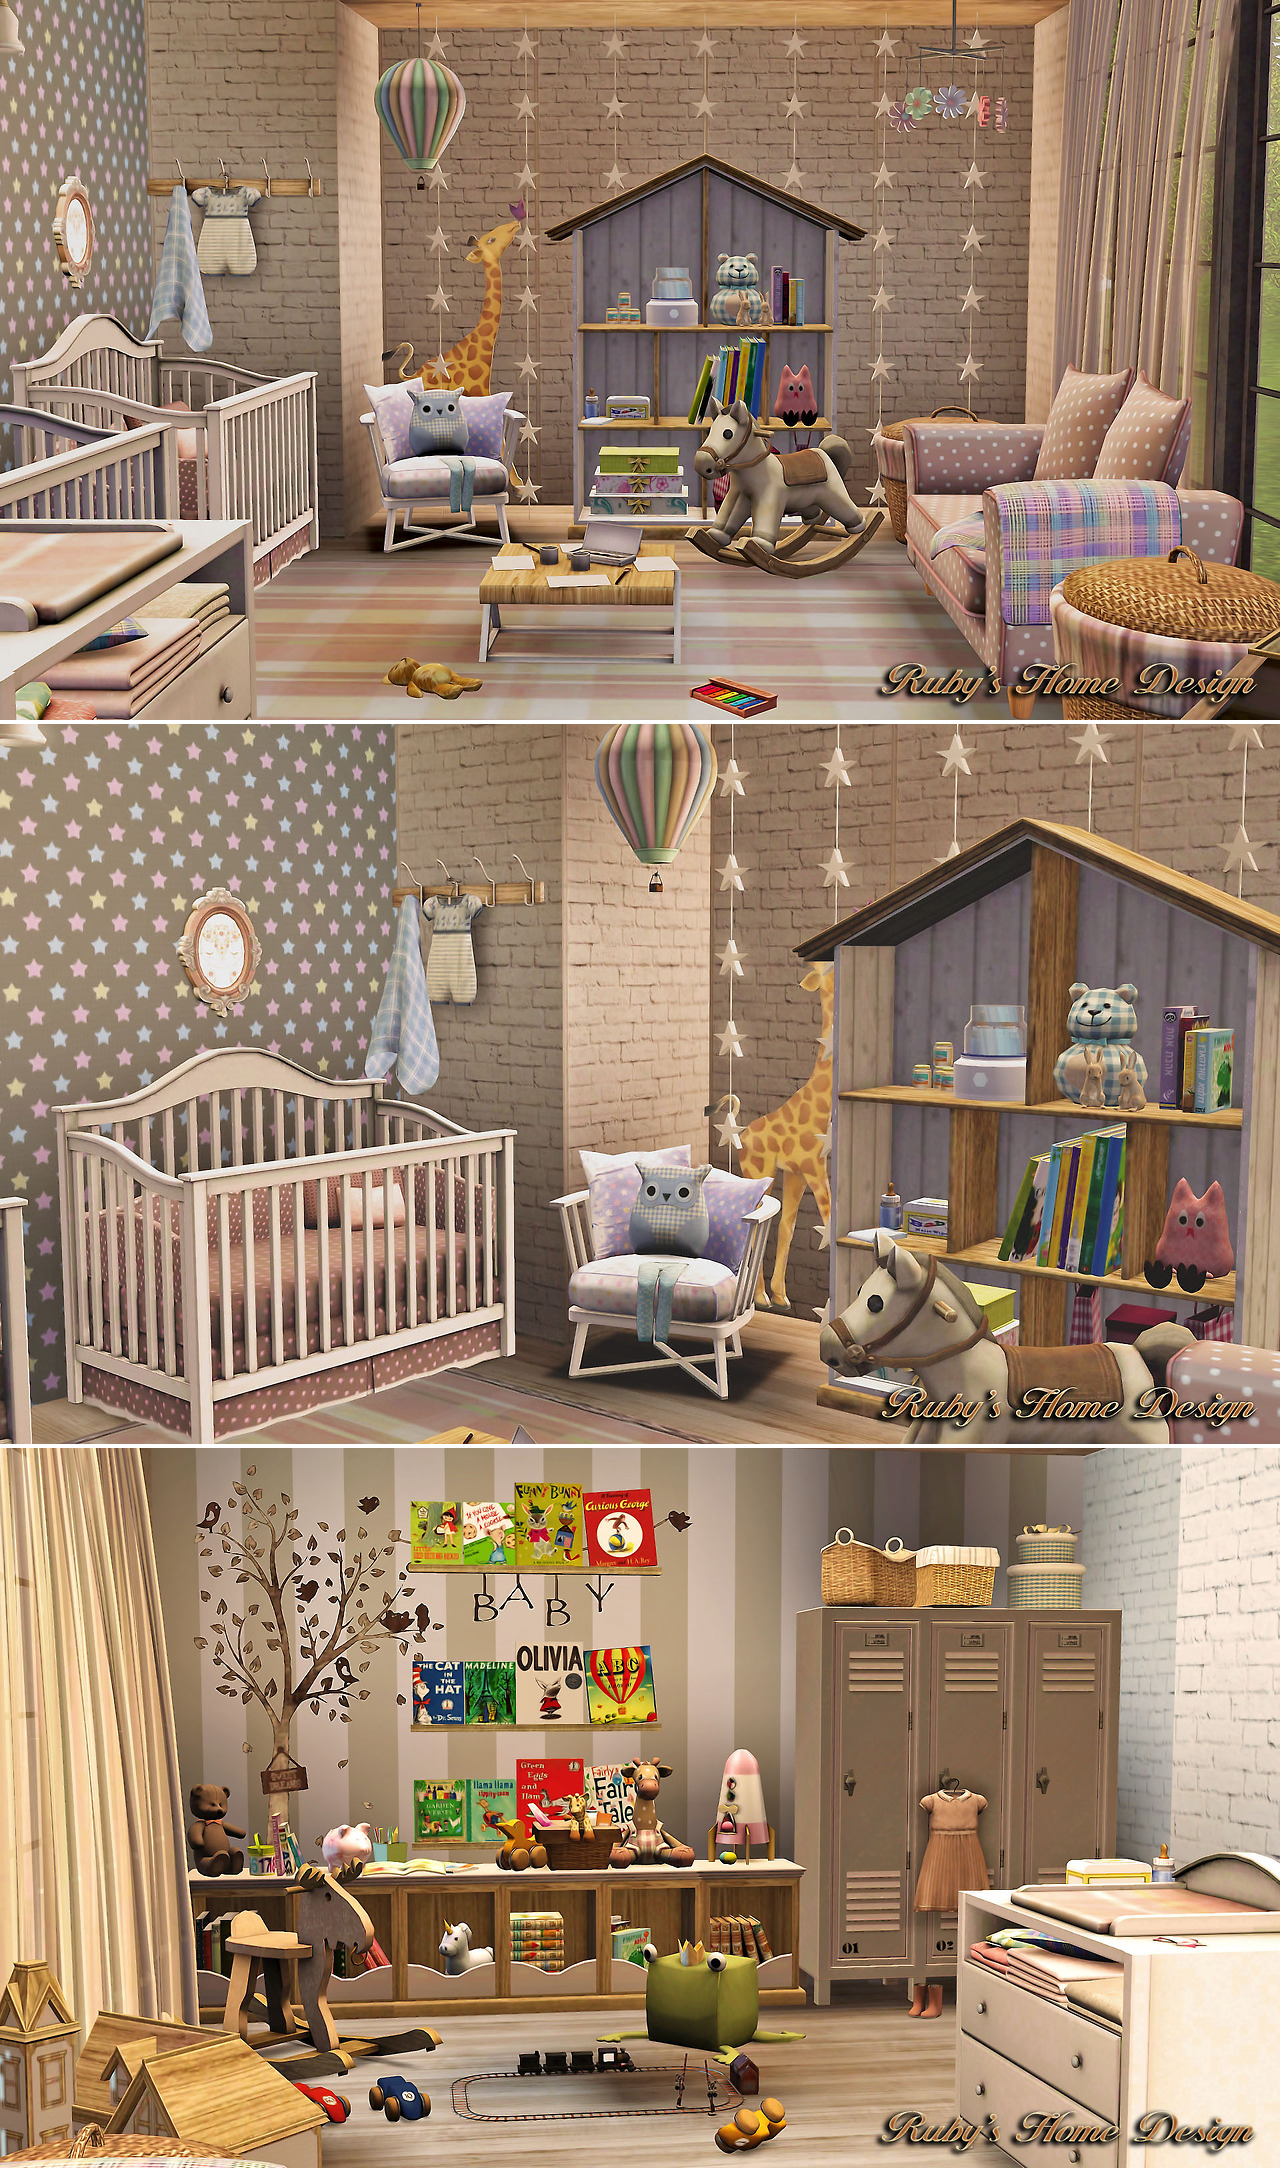 Pin By Adriana Weaver On Sims 3 Stuff Pinterest Sims 3 Sims 4